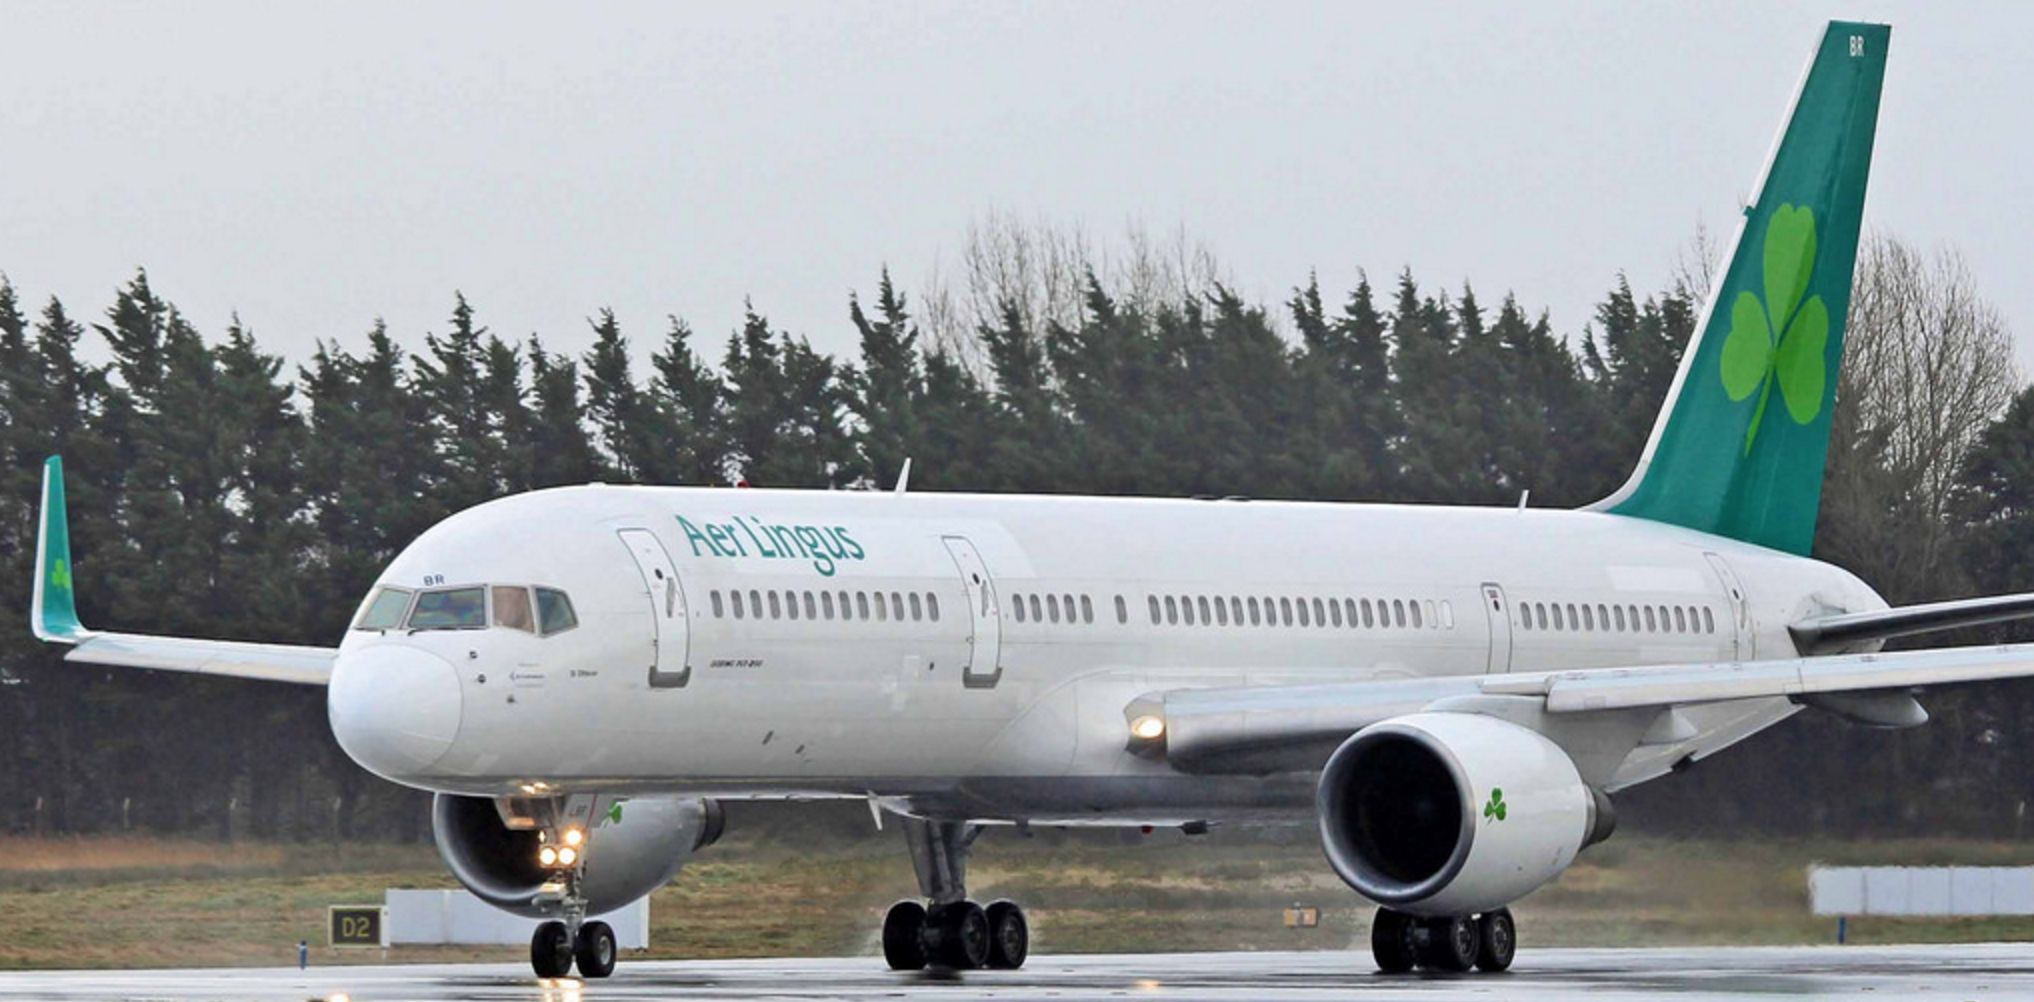 A lesson in emergency handling, from Aer Lingus